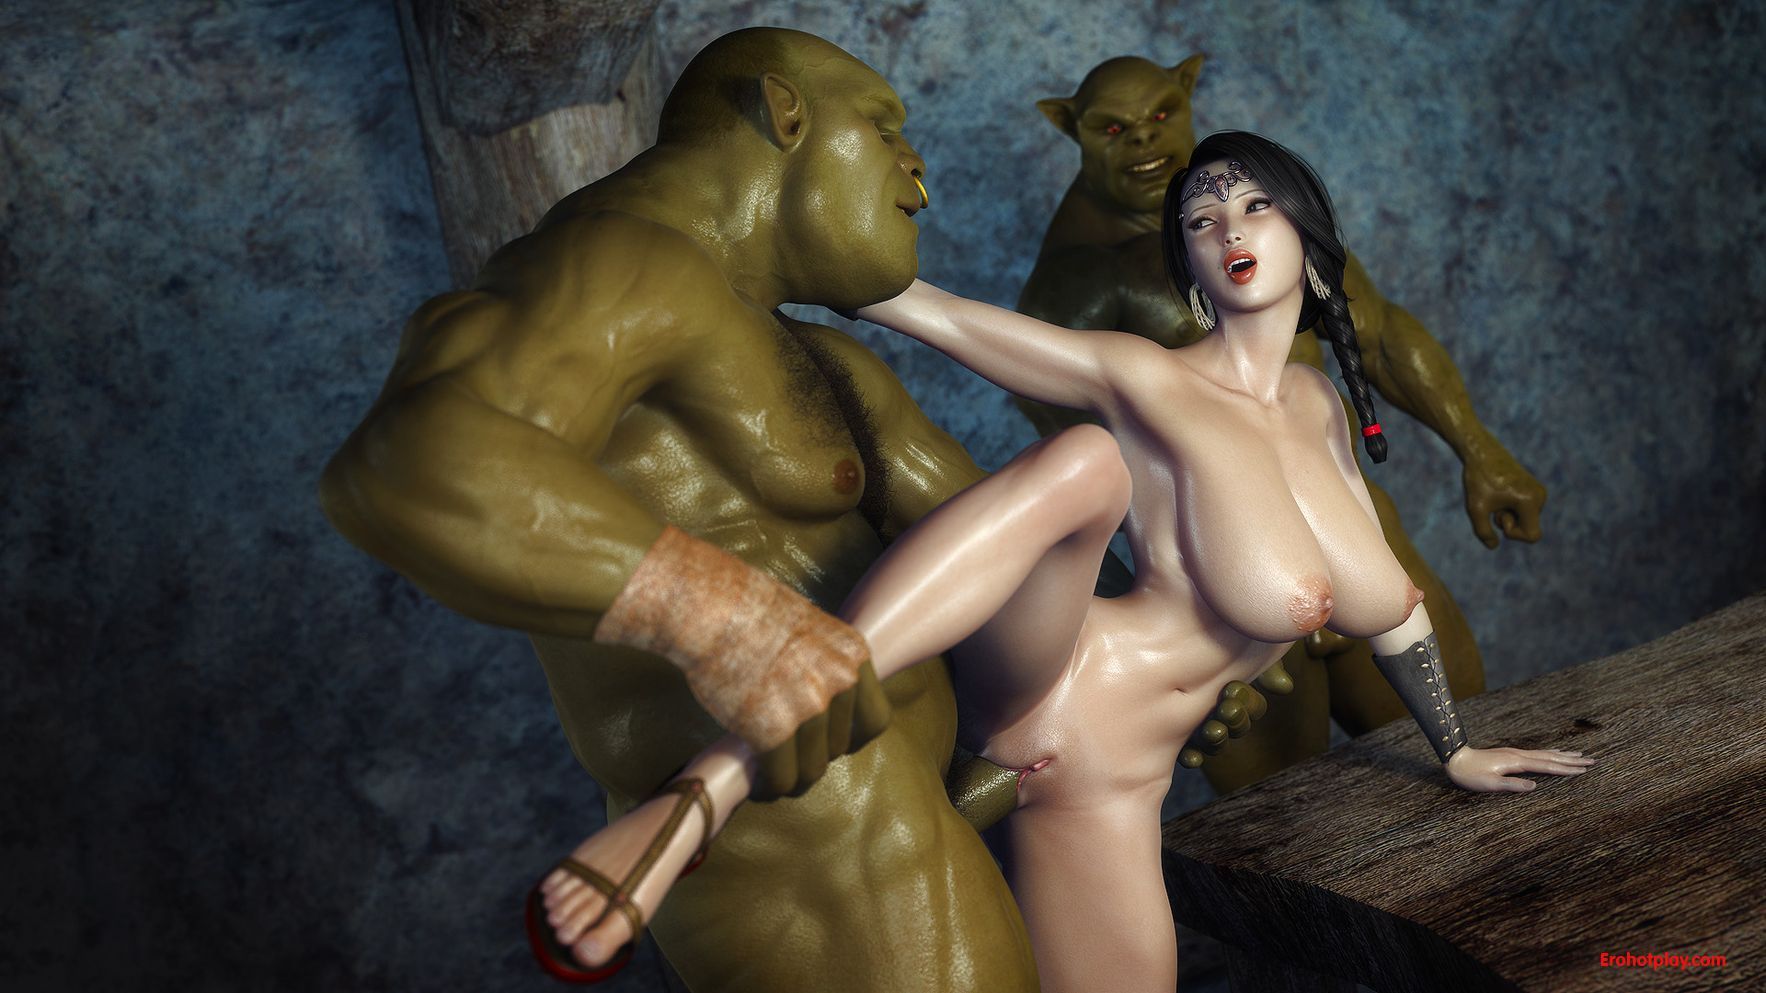 Hentai vs orcs story exposed amateur girl